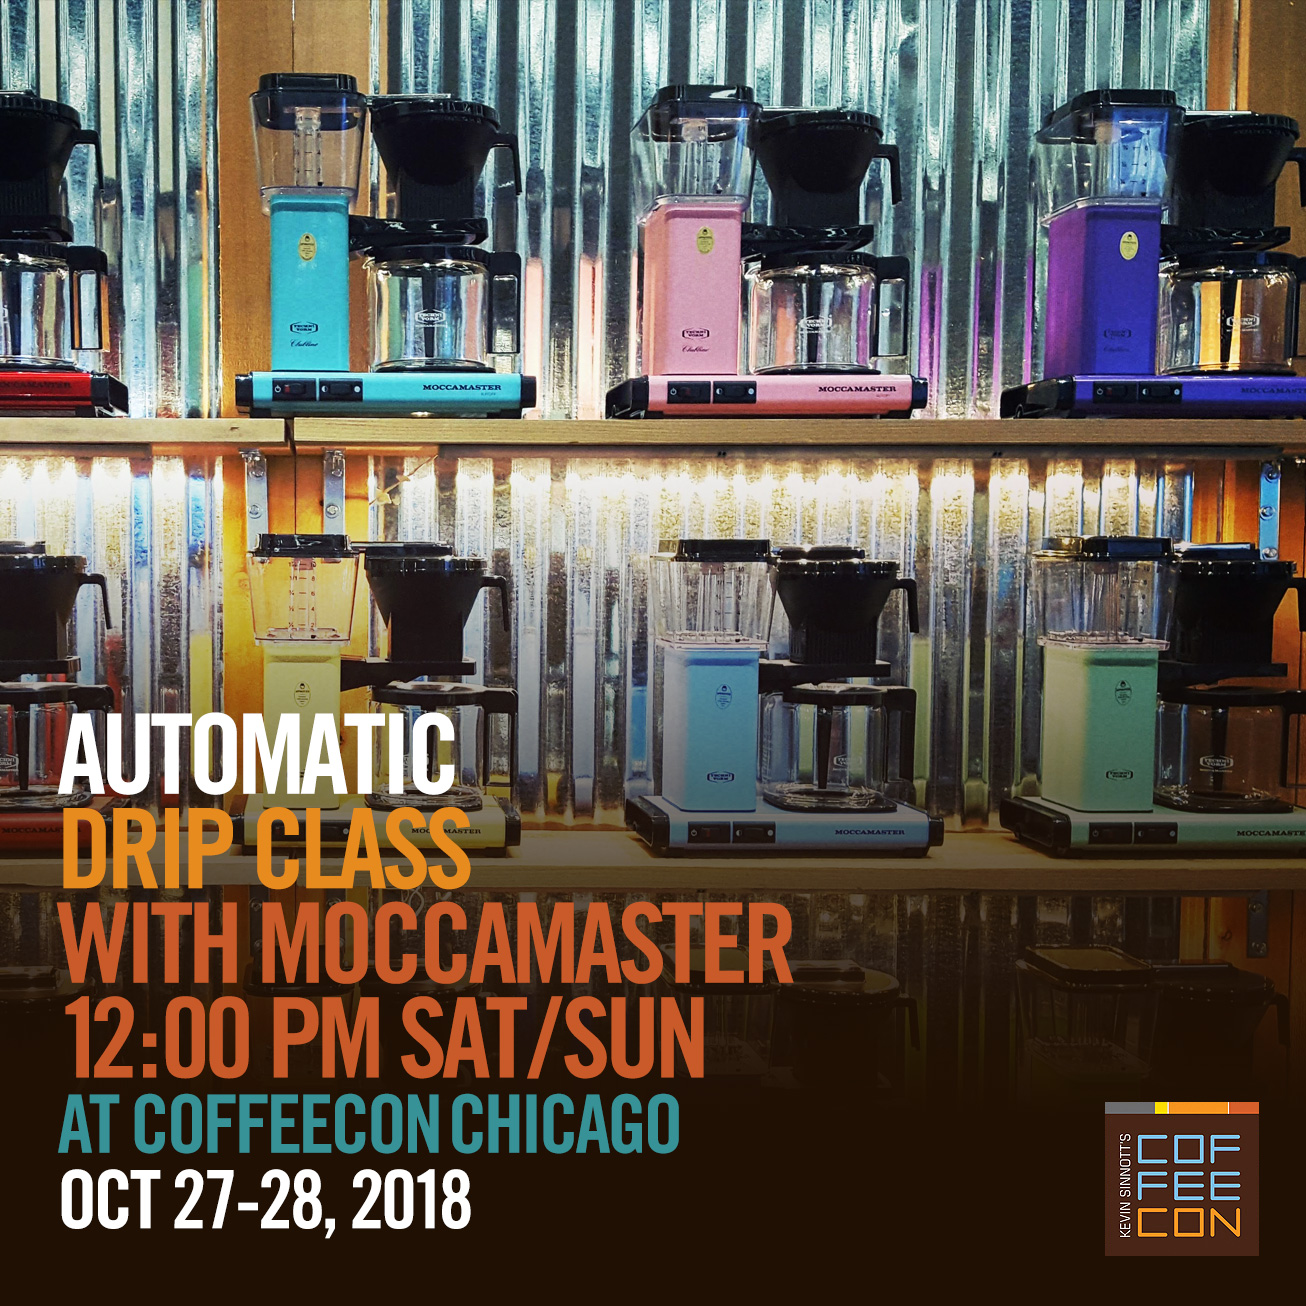 Moccamaster Automatic Drip Class at CoffeeConChi 2018